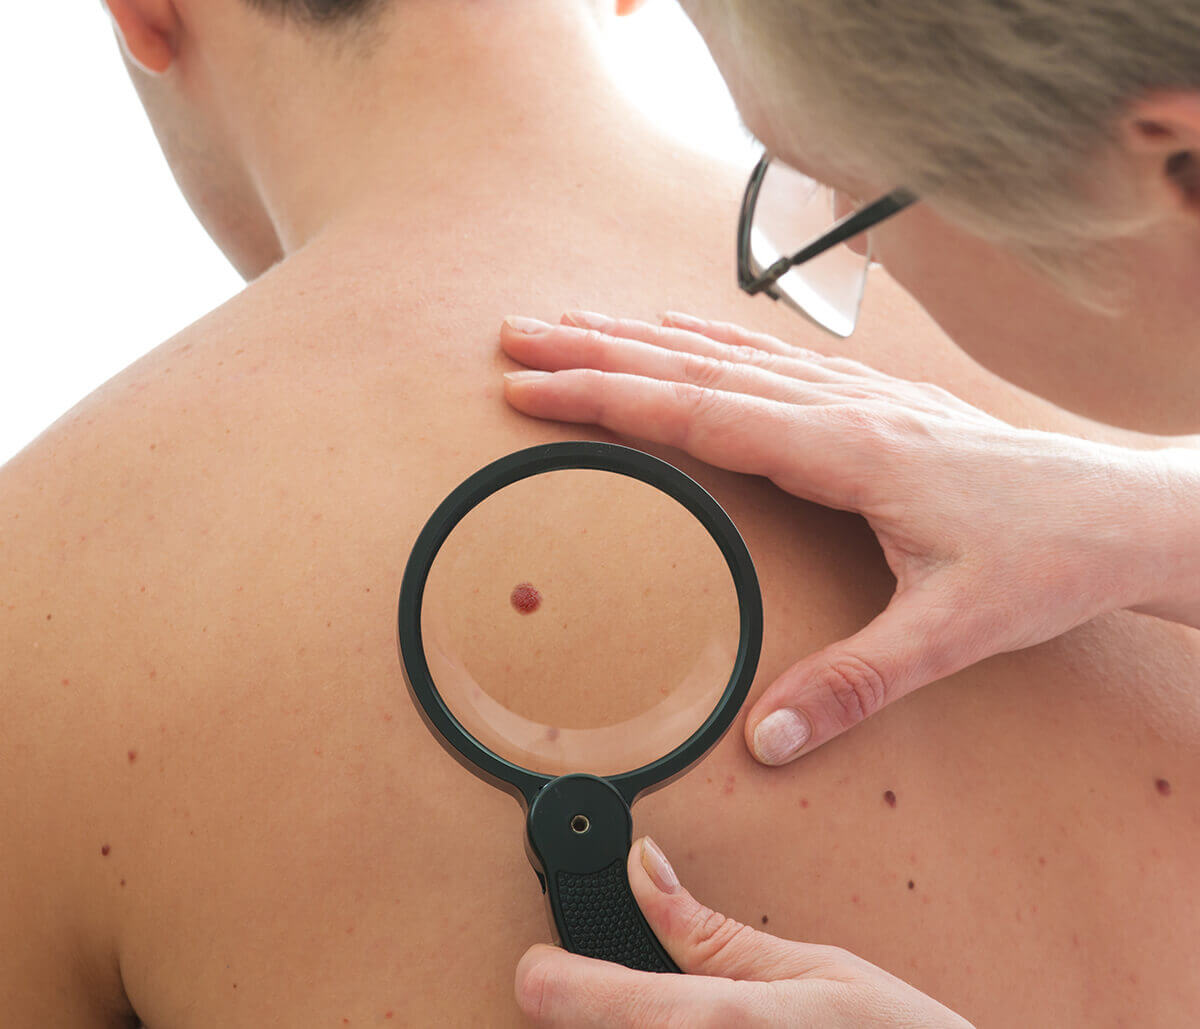 In Hamilton, ON Area Dermatologist Helps Patients Understand how Skin Cancer Affects the Body